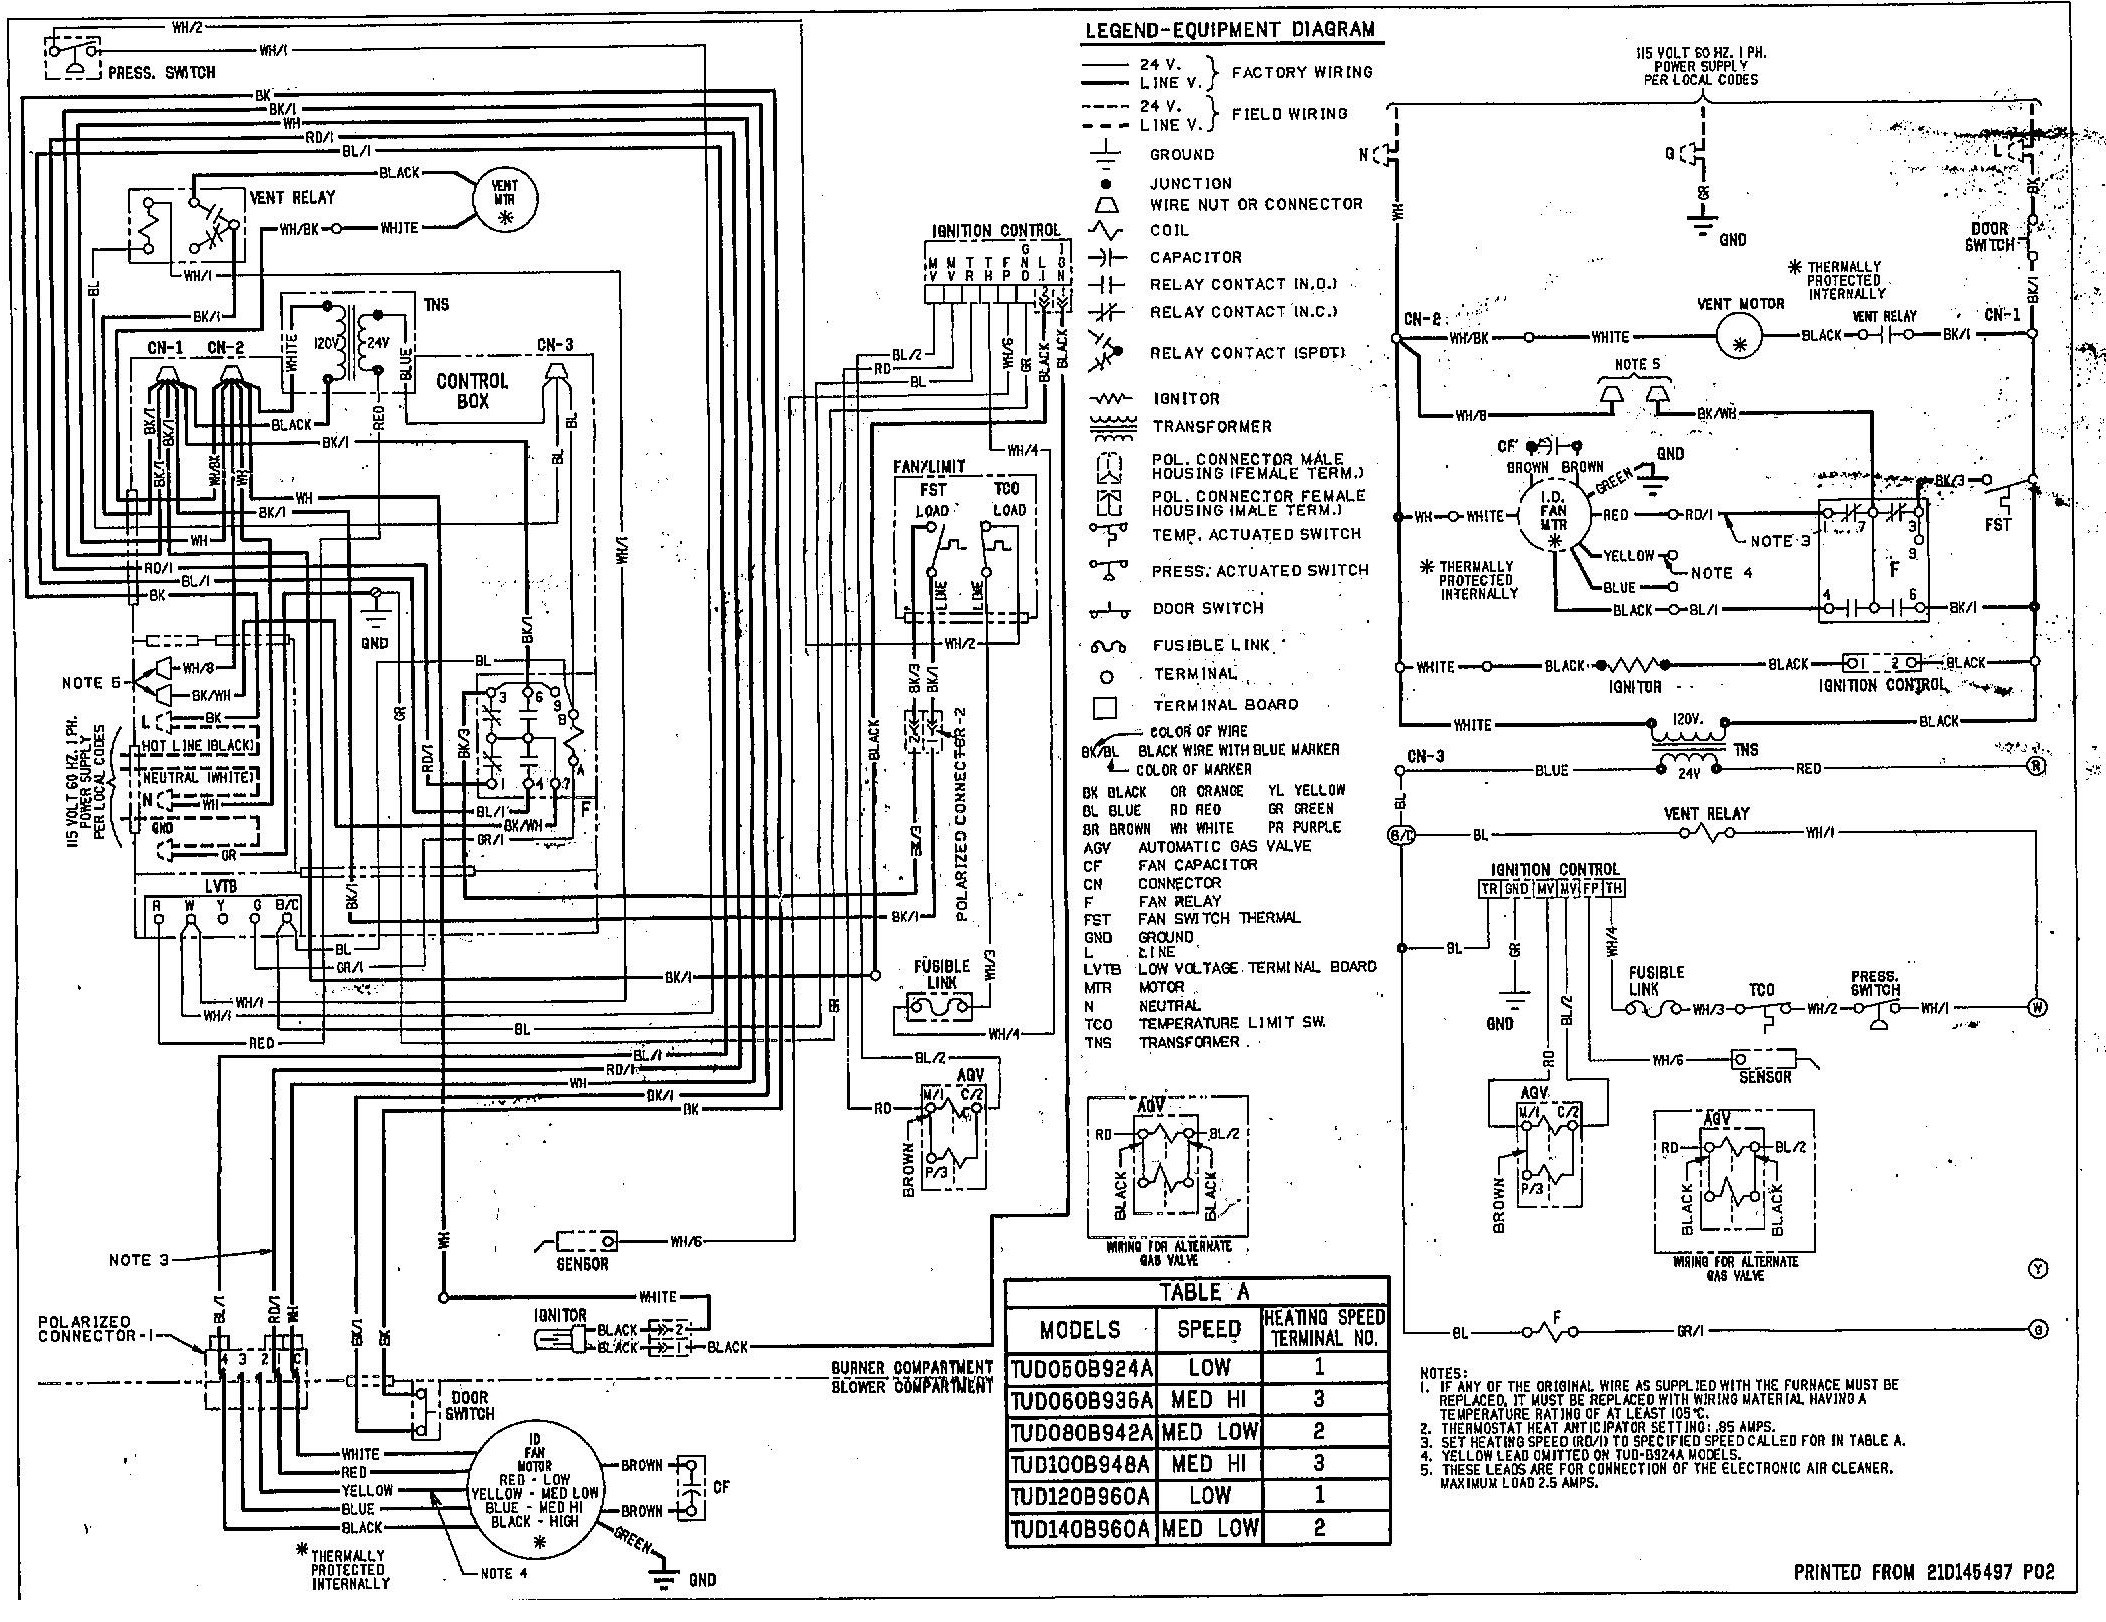 electrical plan examiners transmittal form wiring diagram rh q45 clubedoleao de